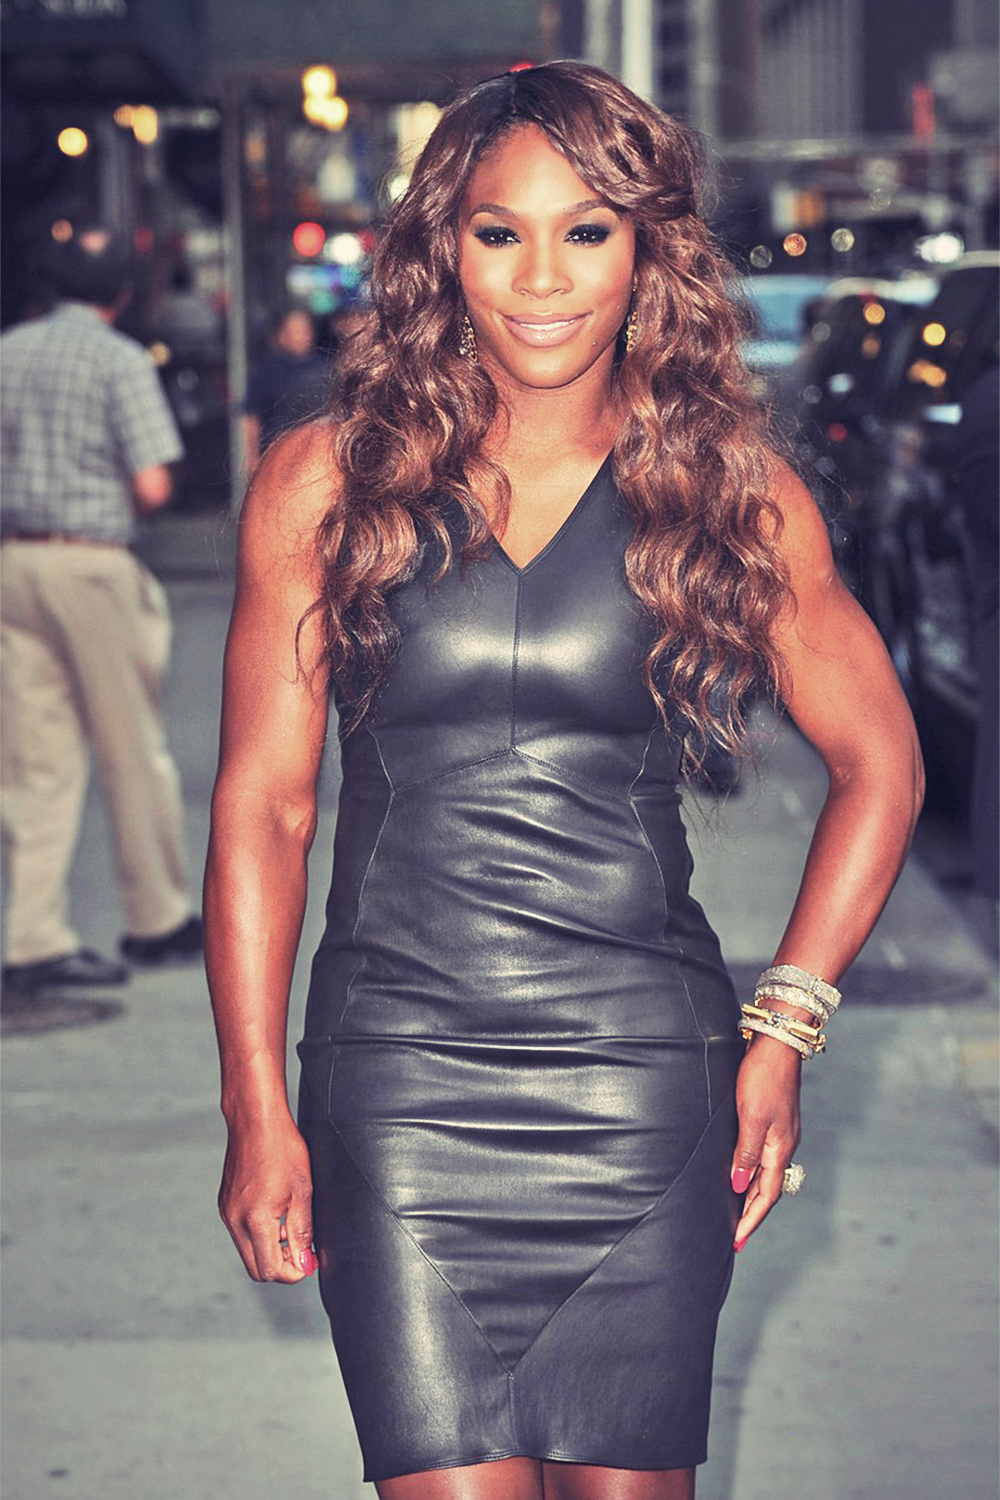 Serena Williams appearance on The Late Show with David Letterman